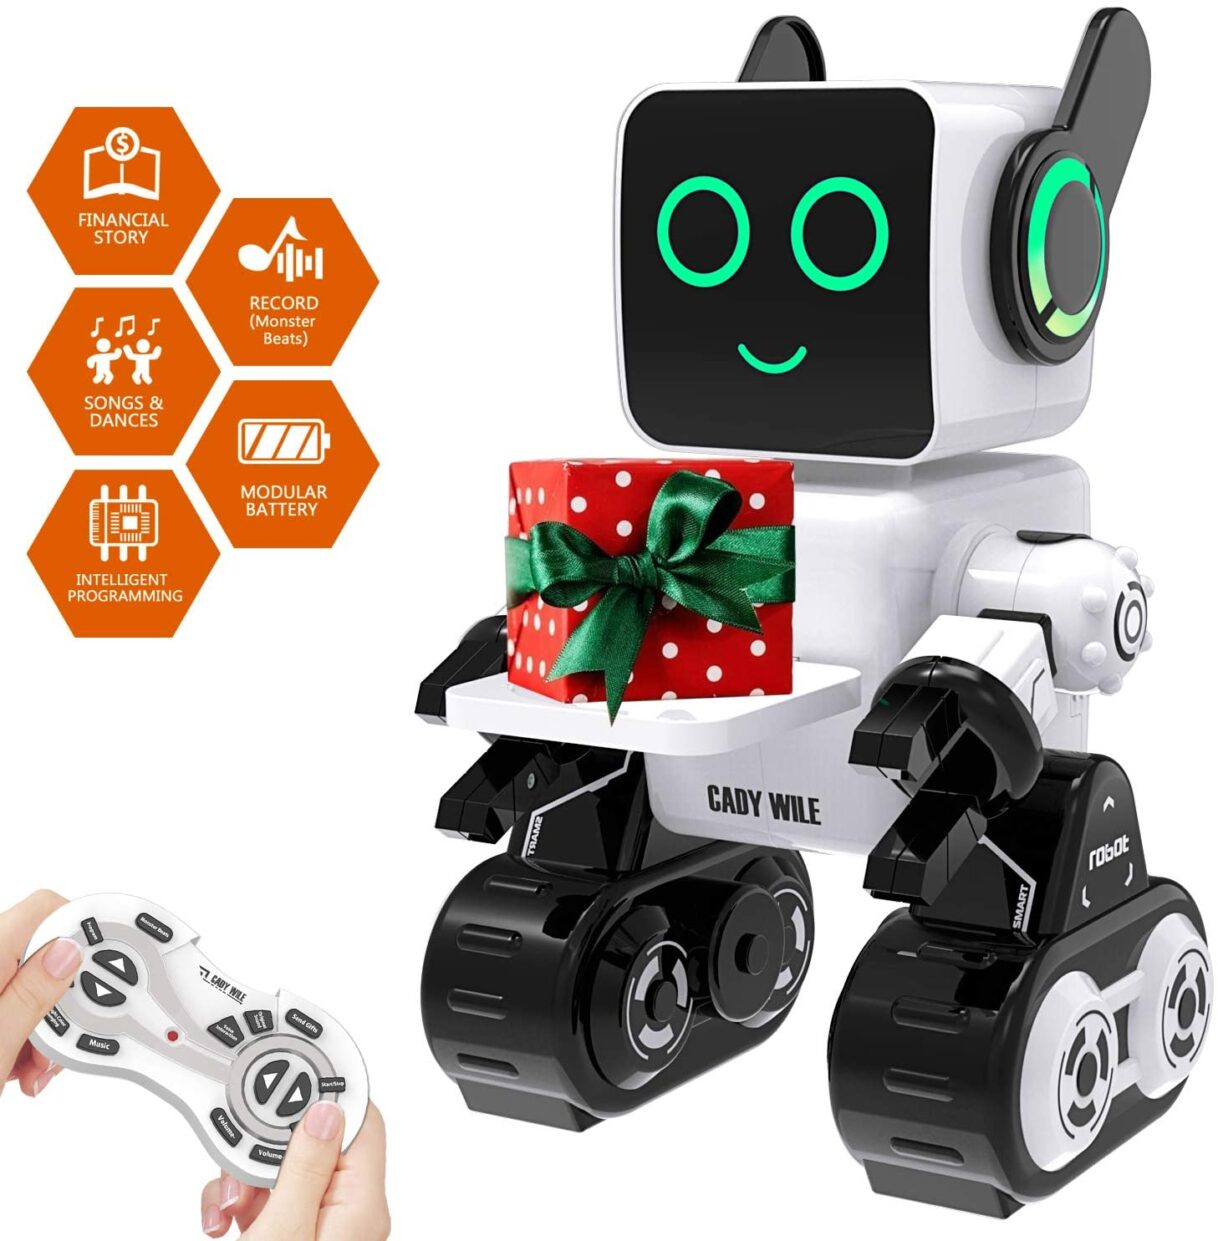 Robotics: Cady Wile Smart STEM Remote Control Robot Toy for Kids